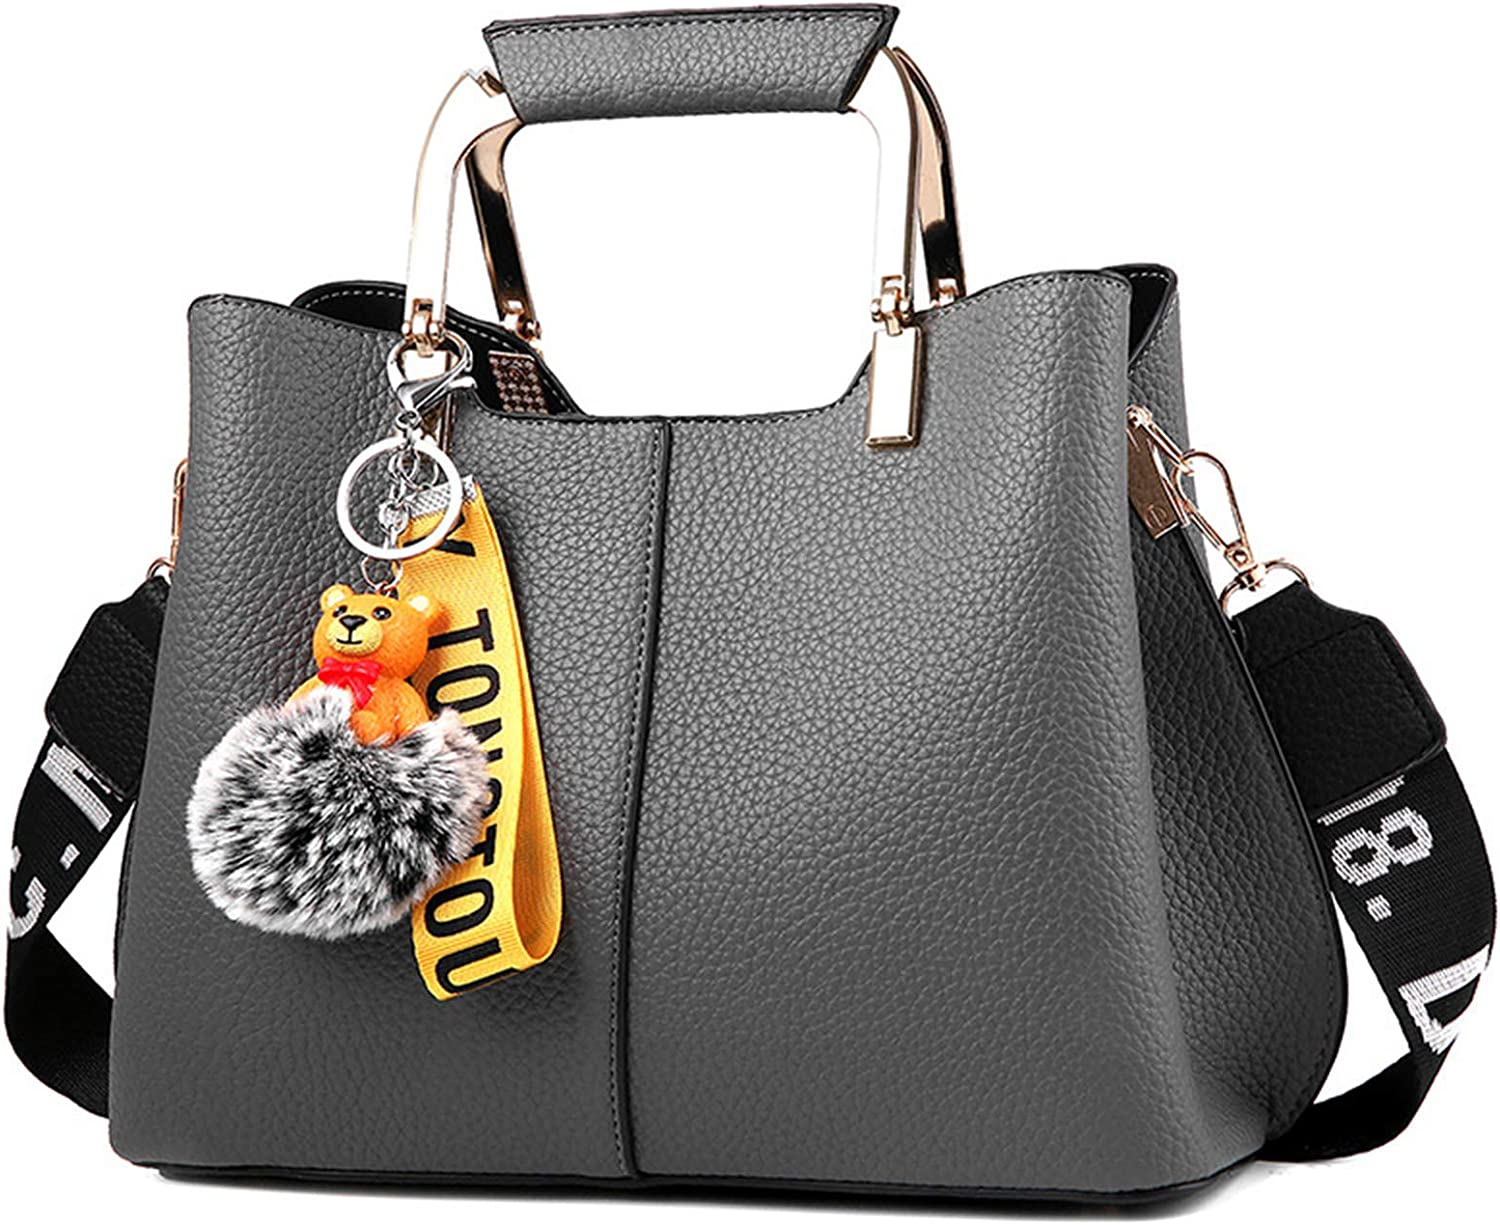 Women Top Handle Special price for a limited time Bag Crossbody Sales for sale Elegant Stitching Handbags